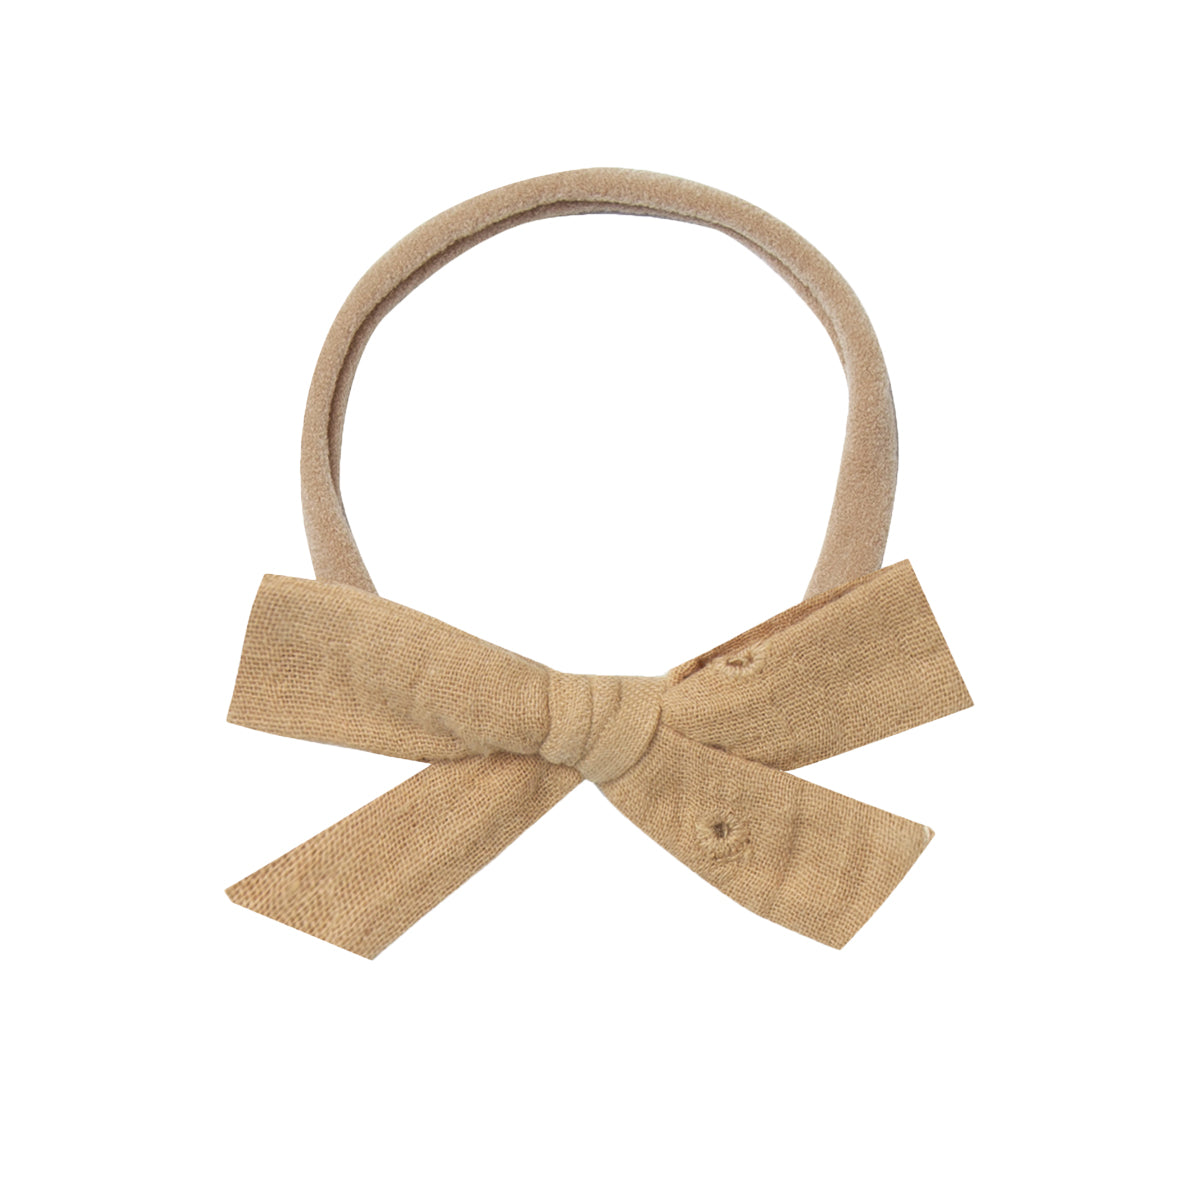 Rylee and Cru Baby Headband at Bonjour Baby Baskets